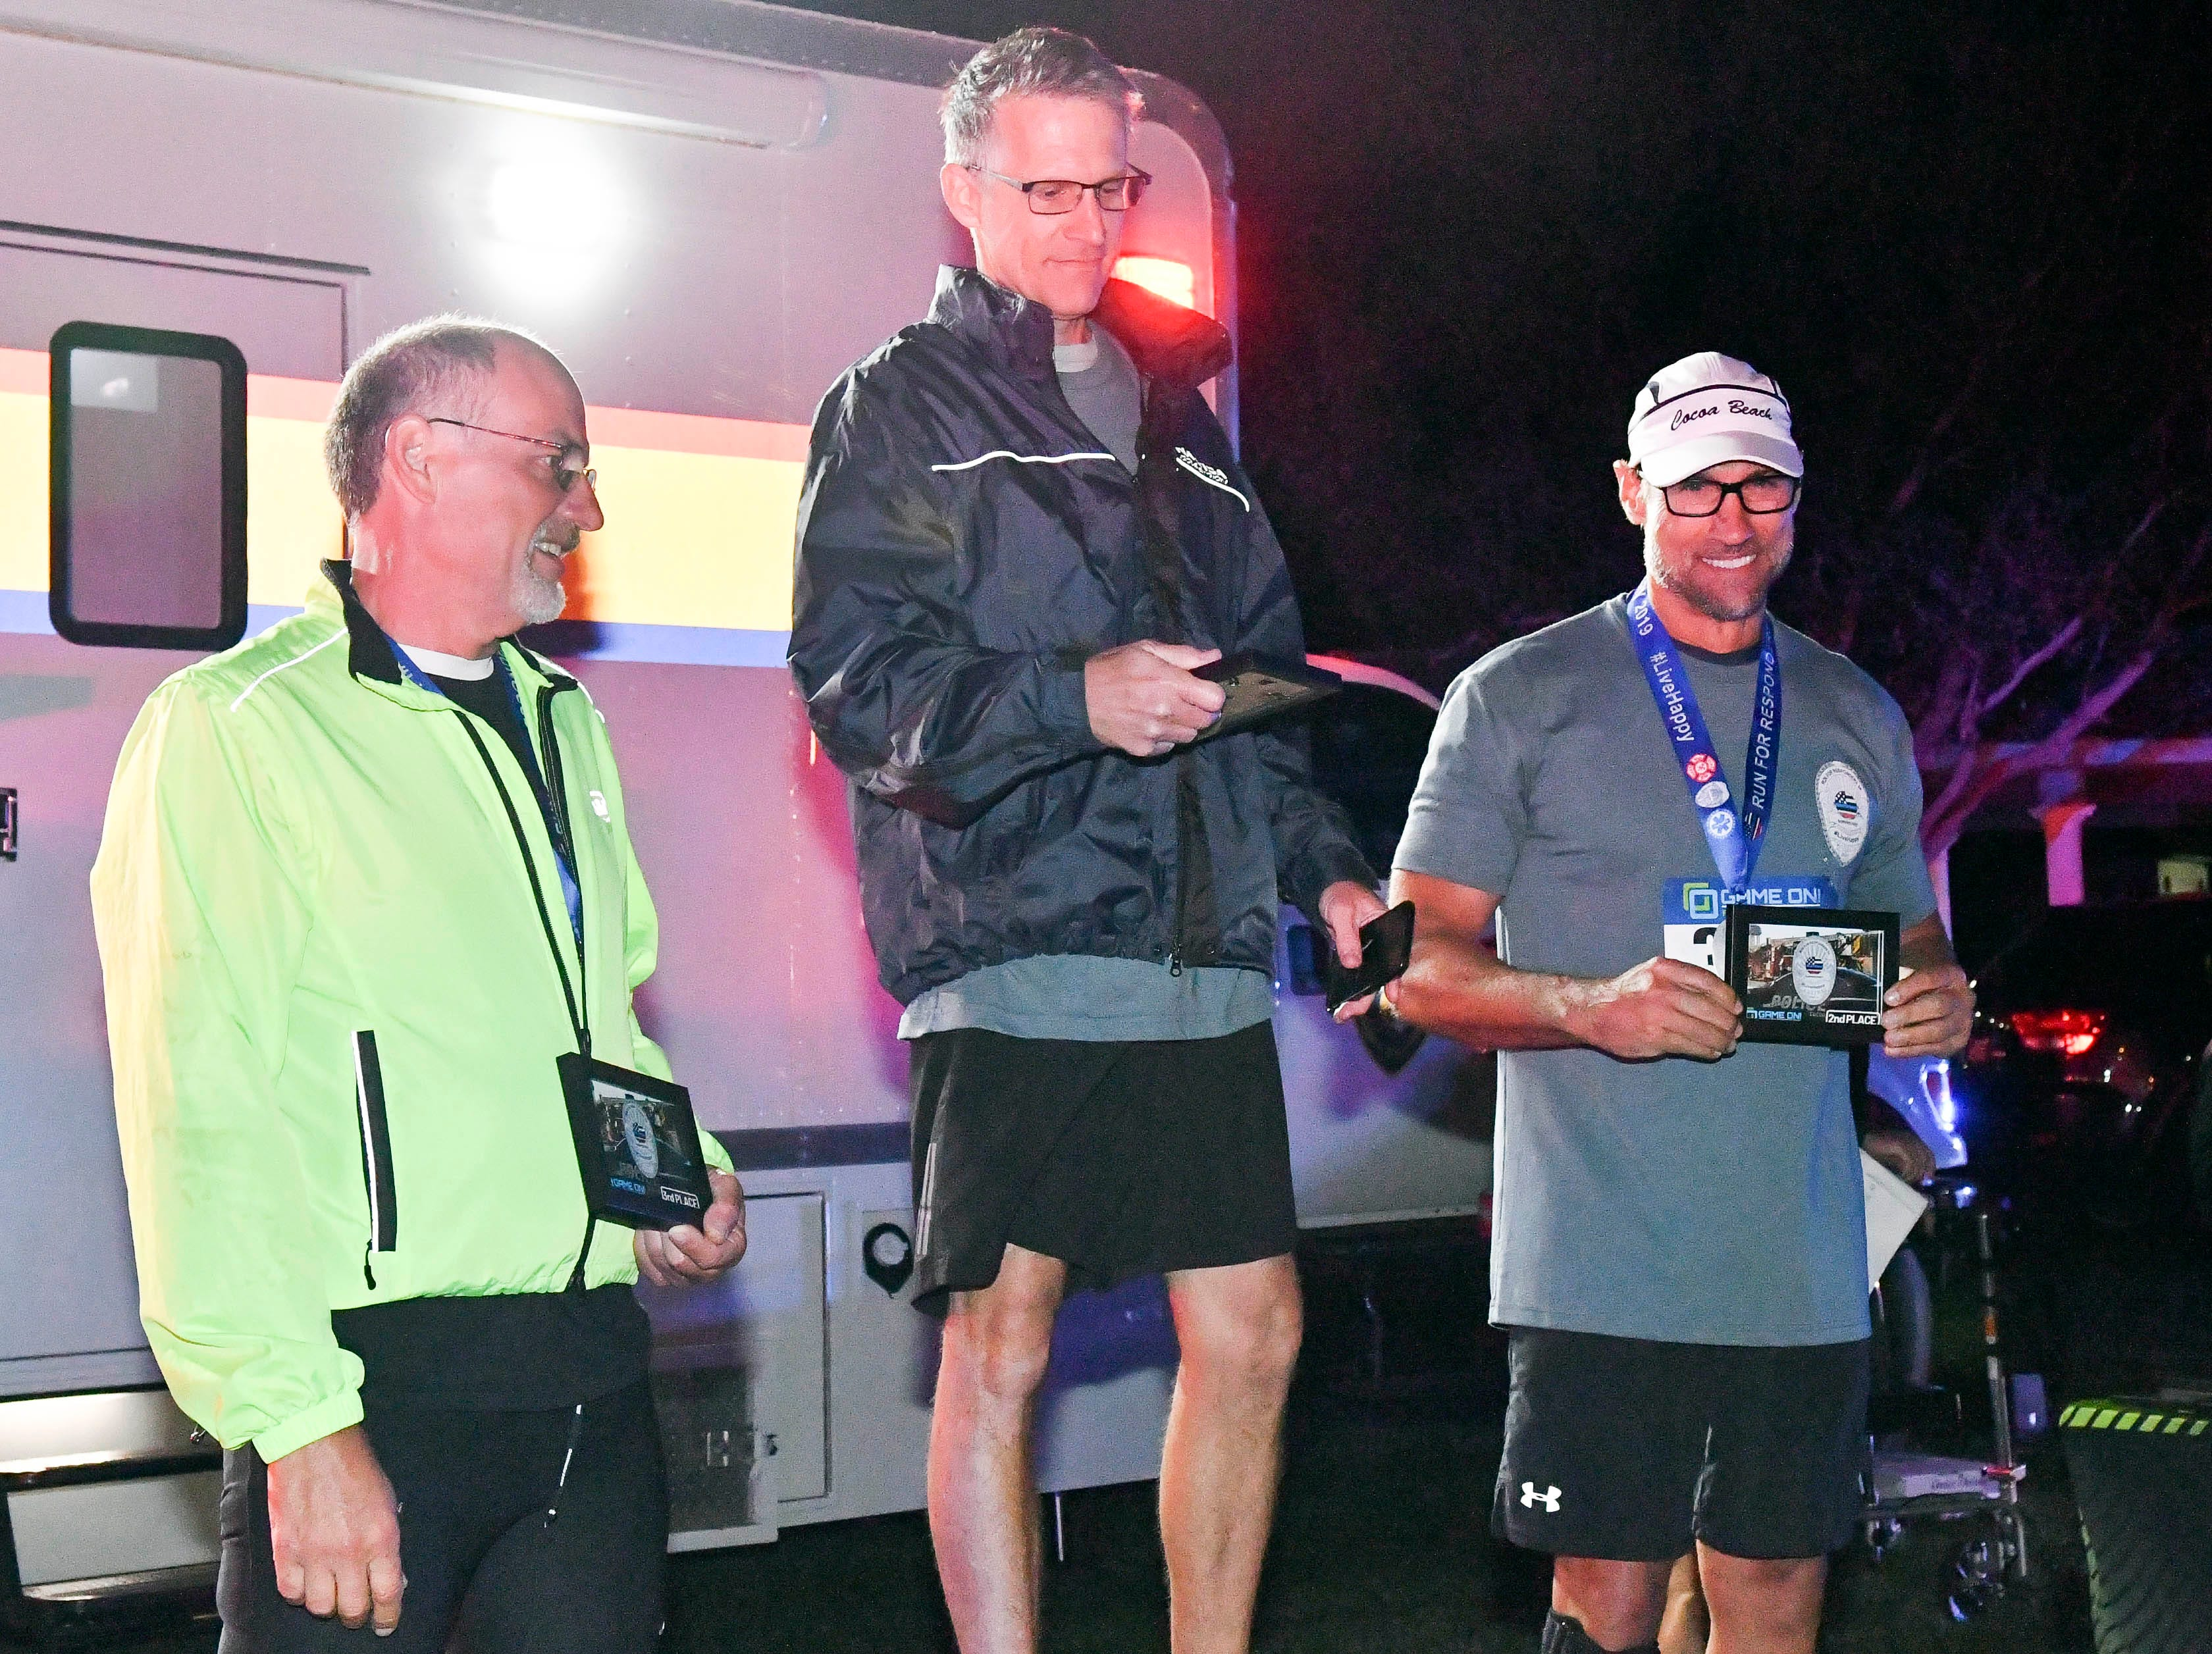 Participants in the inaugural Game On Run for Responders 5K Run/Walk receive their awards during Saturday's event.  Proceeds from the event benefit Survive First.